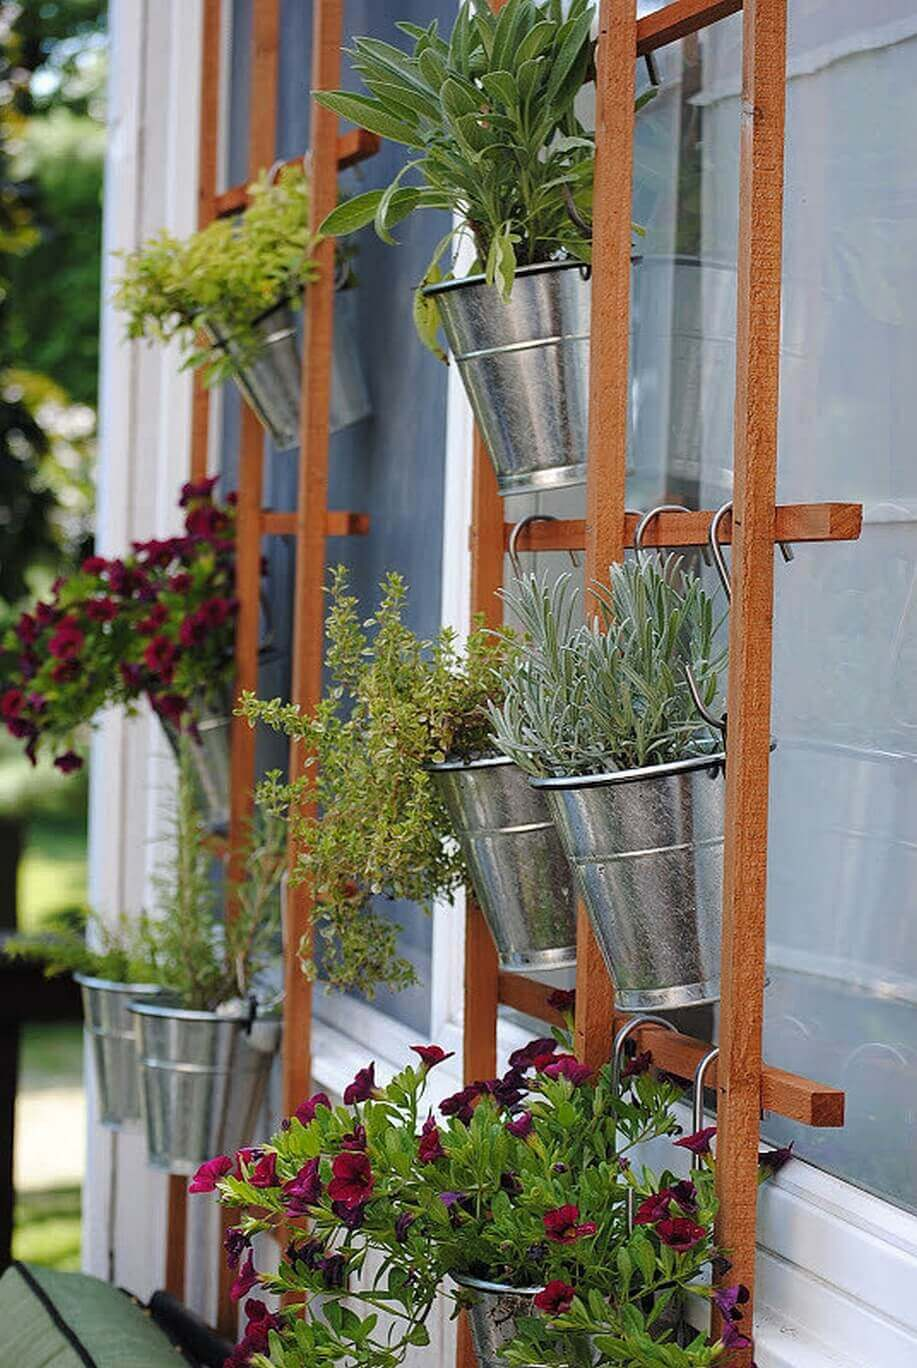 45 Best Outdoor Hanging Planter Ideas and Designs for 2020 on Hanging Plants Stand Design  id=99714